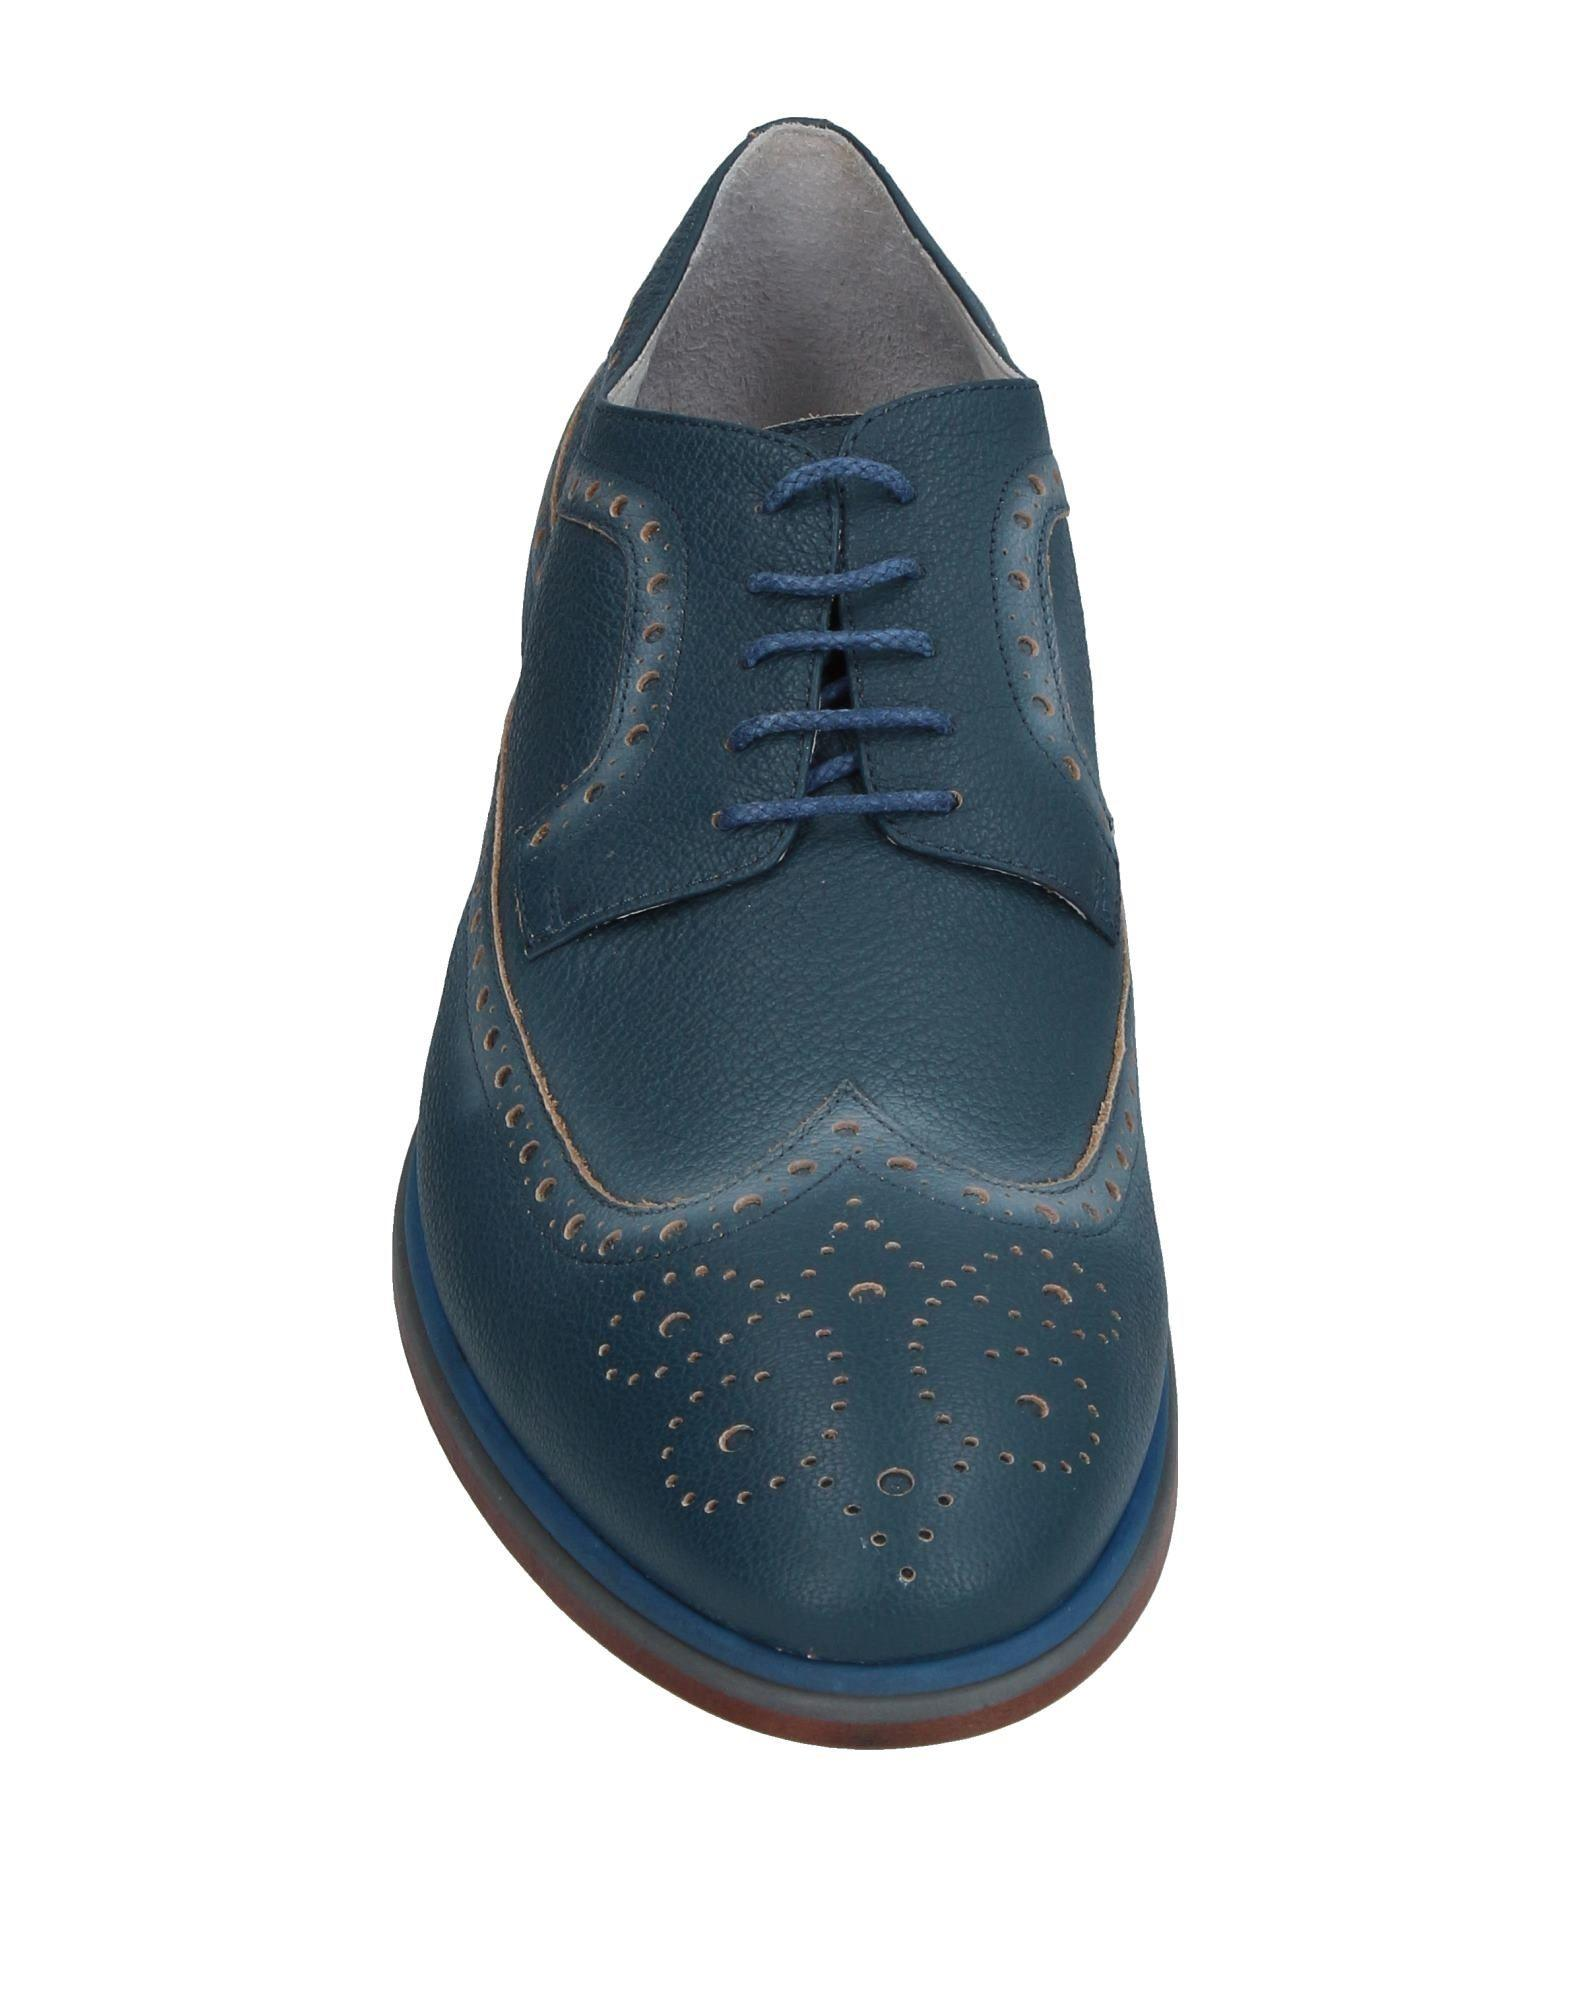 Alberto Guardiani Leather Lace-up Shoe in Deep Jade (Blue) for Men